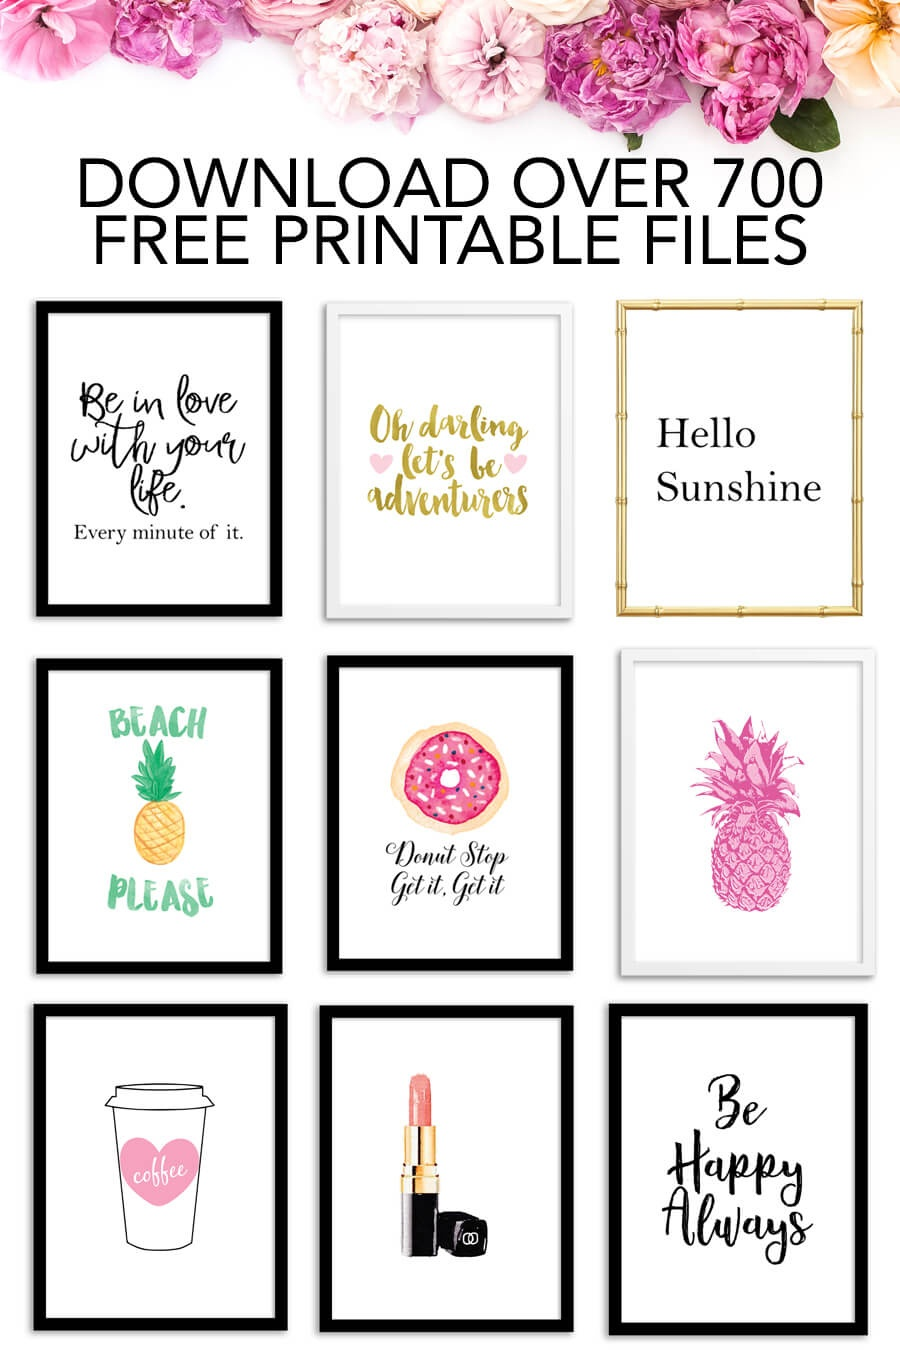 Free Printables - Download Over 700 Free Printable Files! - Chicfetti - Free Printables Com